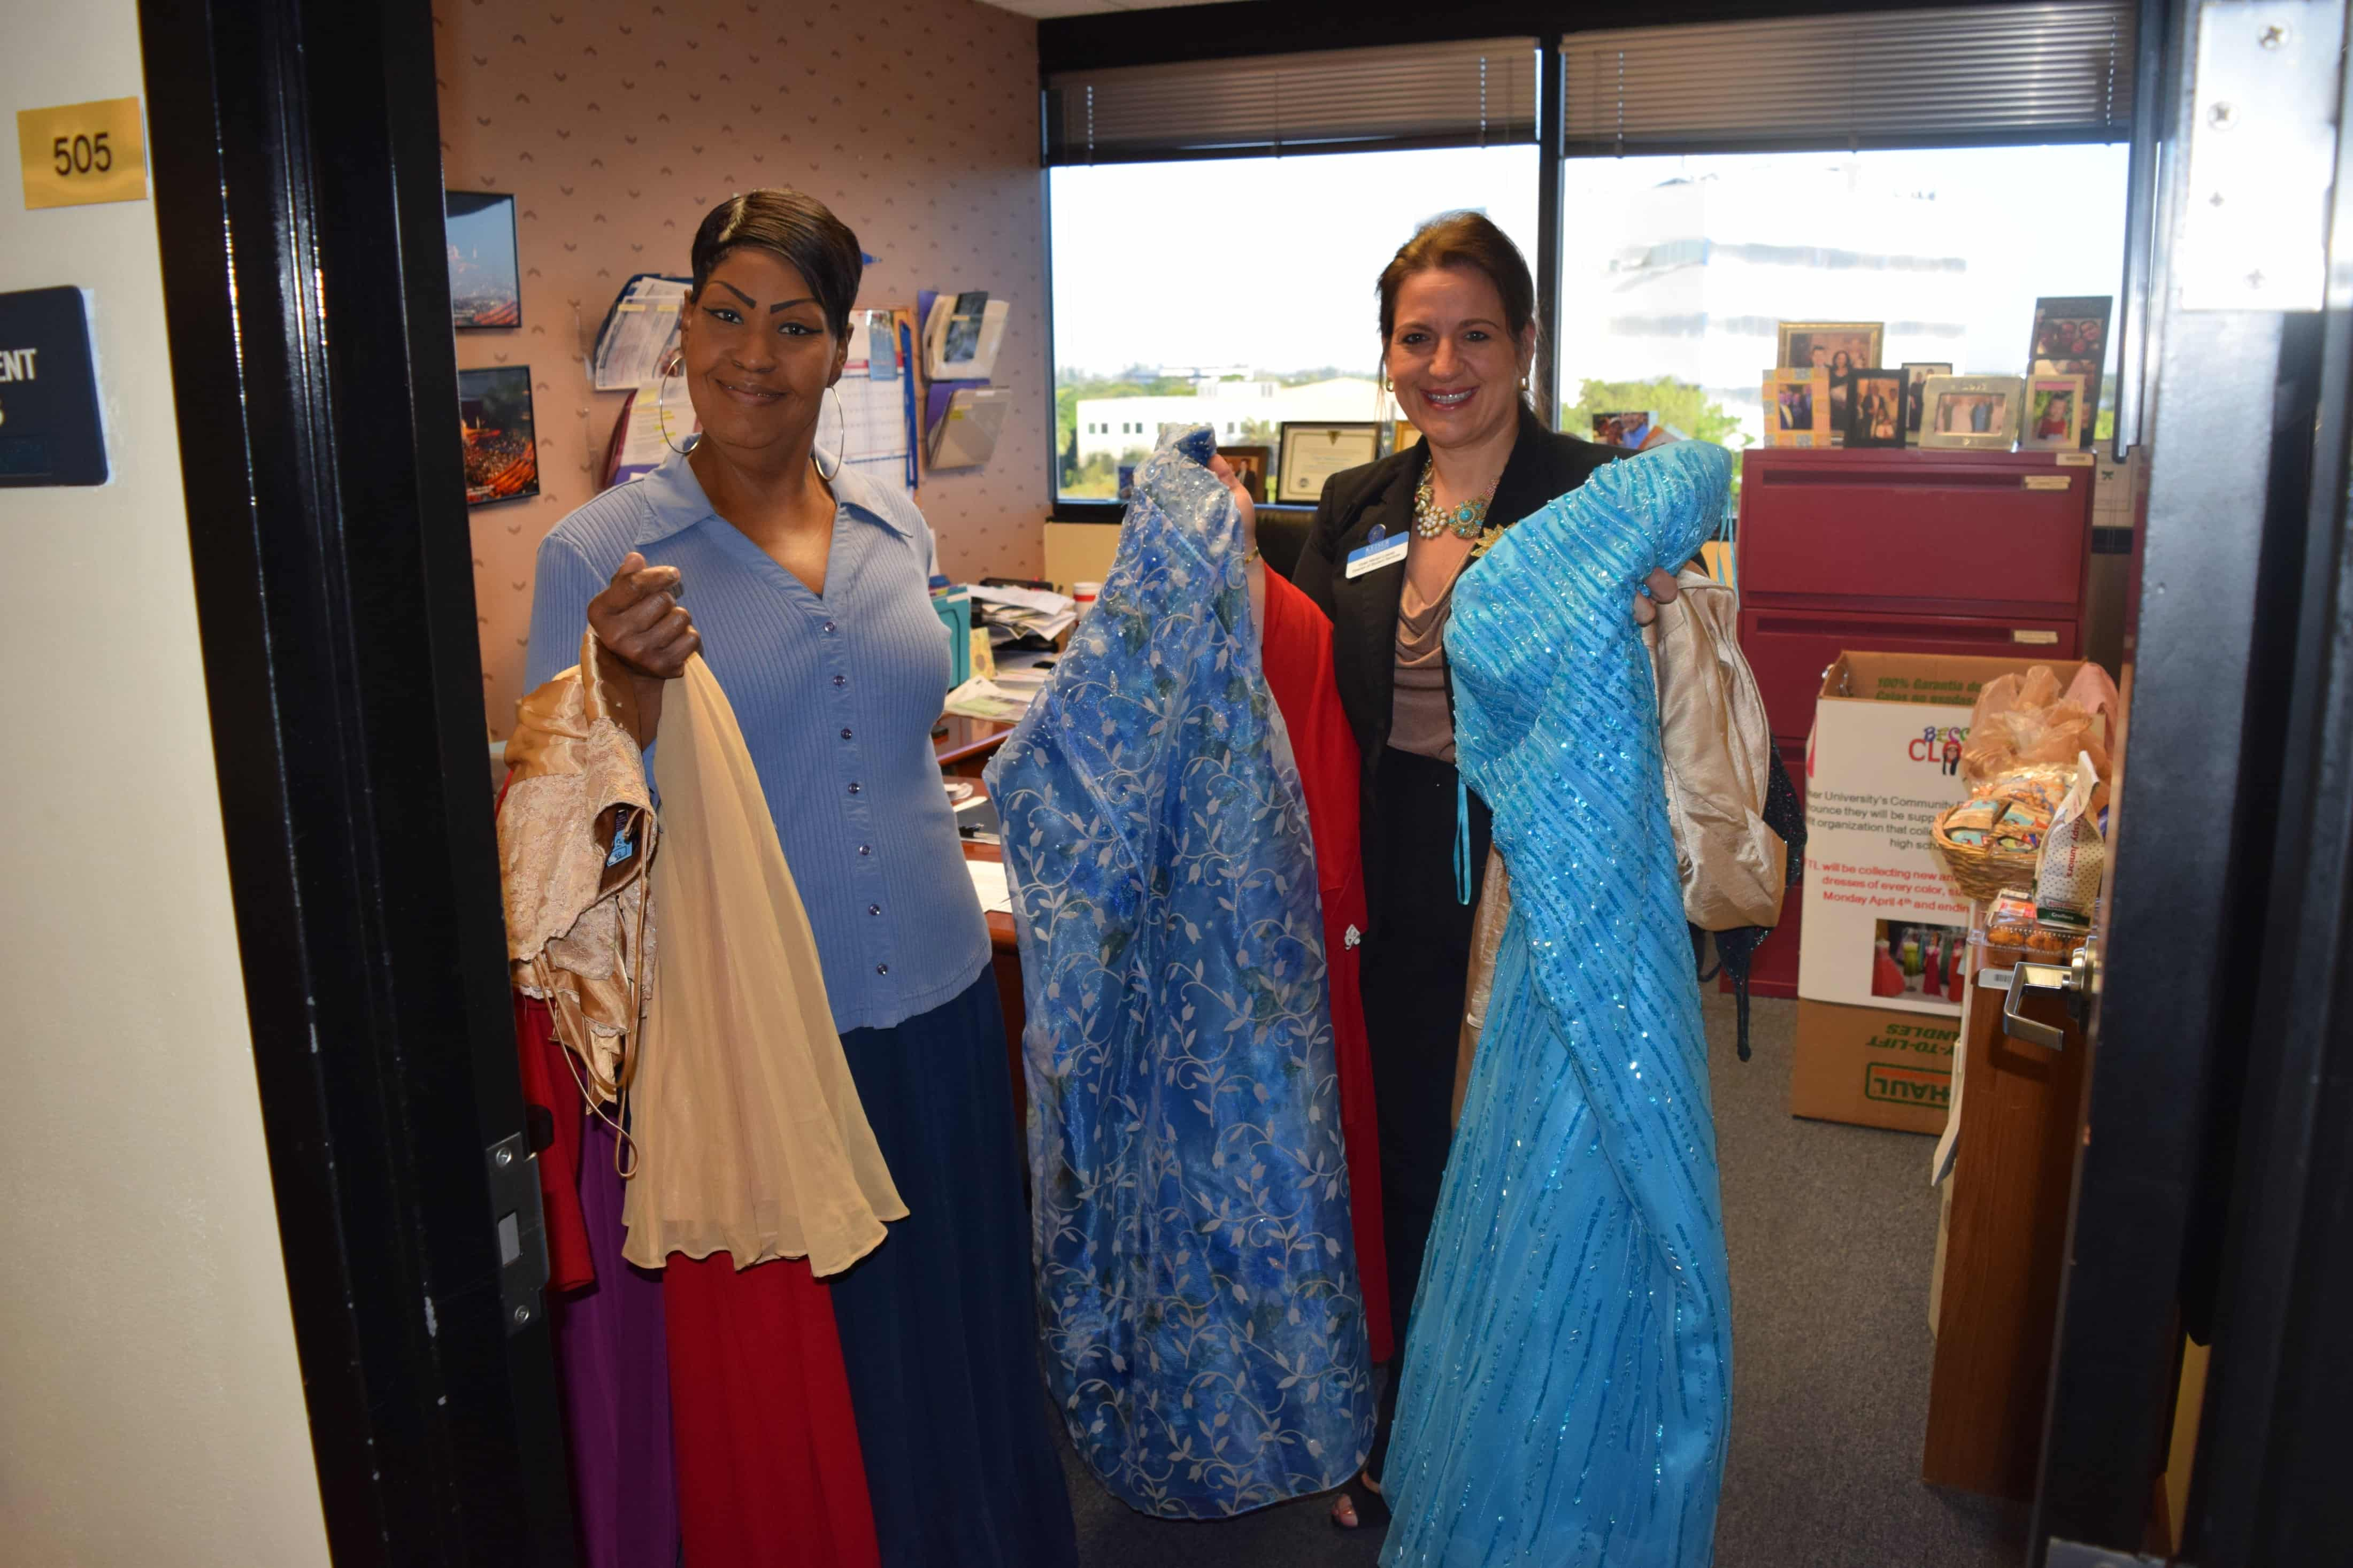 Becca's Closet Receives Donated Prom Dresses from the Ft. Lauderdale Campus